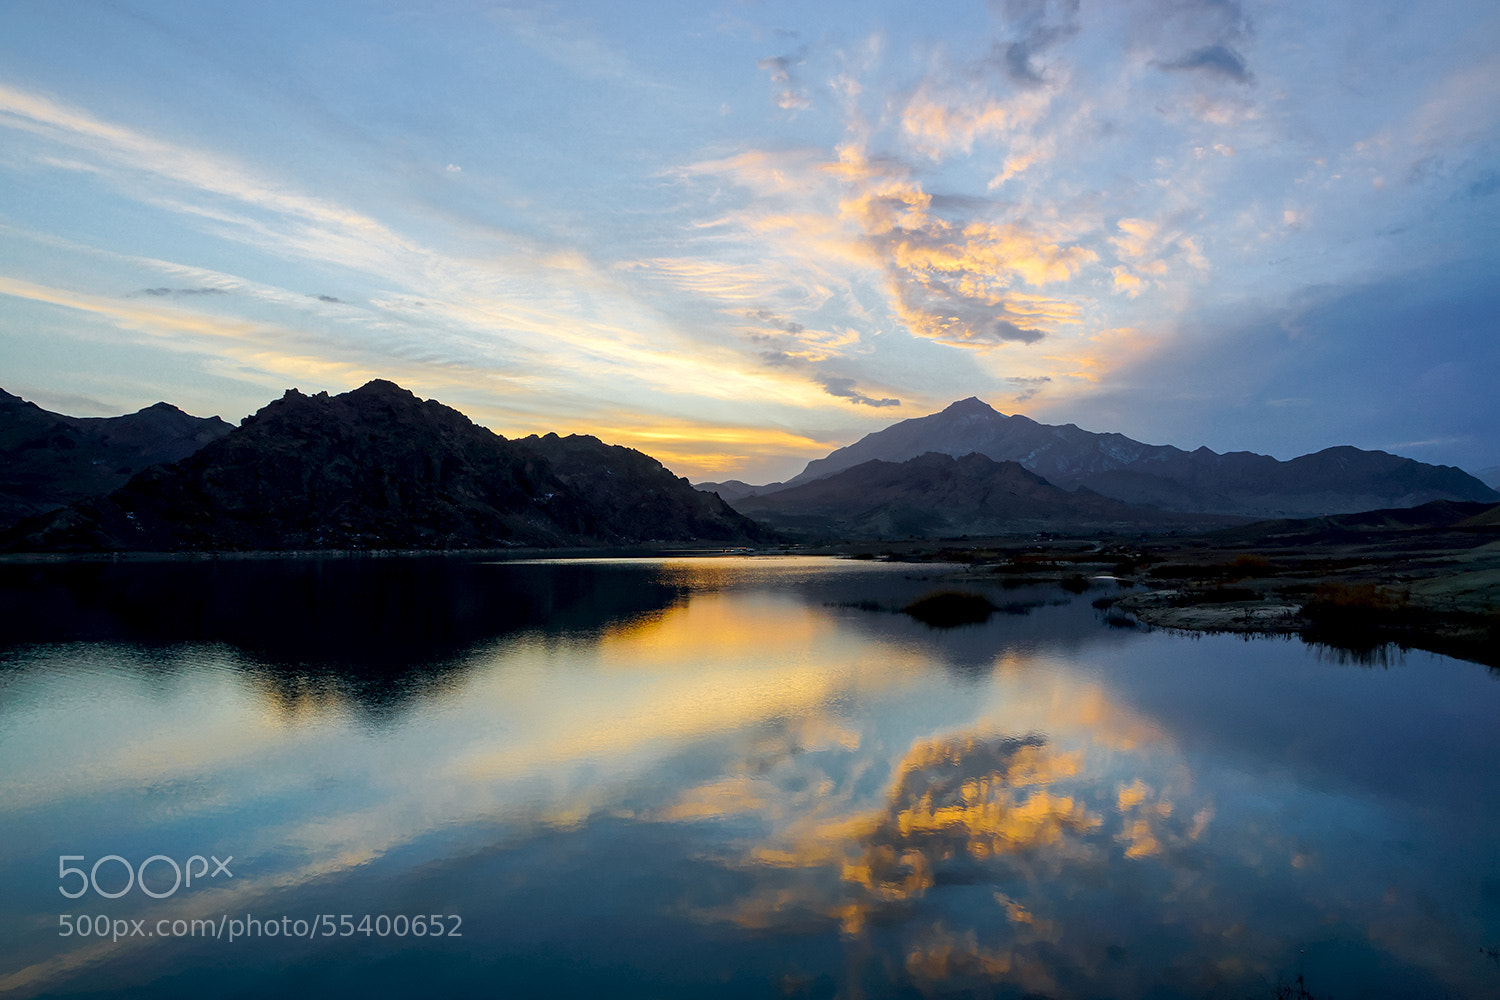 Photograph ~Lake at sunset~ by S'Mojtaba Hosseini on 500px